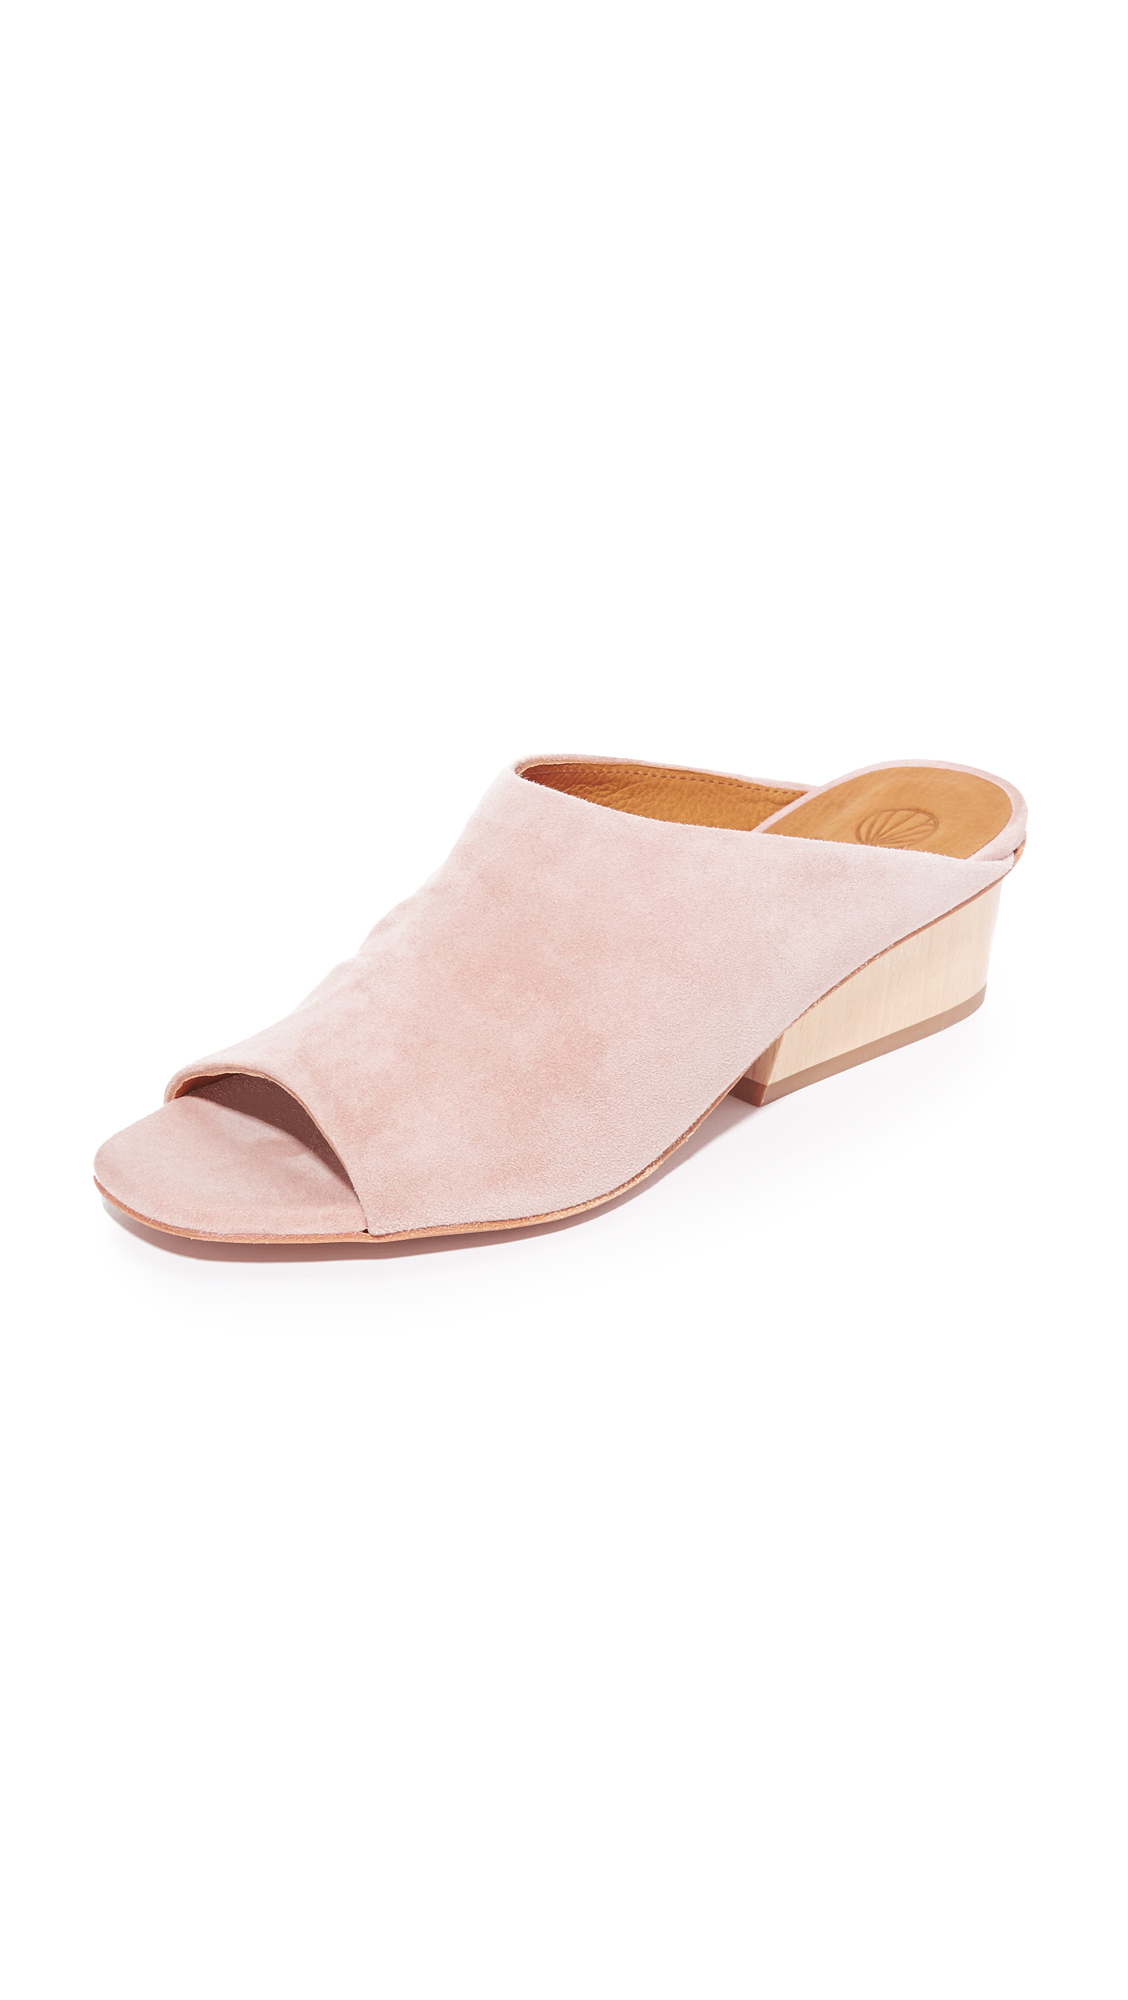 Coclico Shoes Oahu Mules - Maquillaje at Shopbop